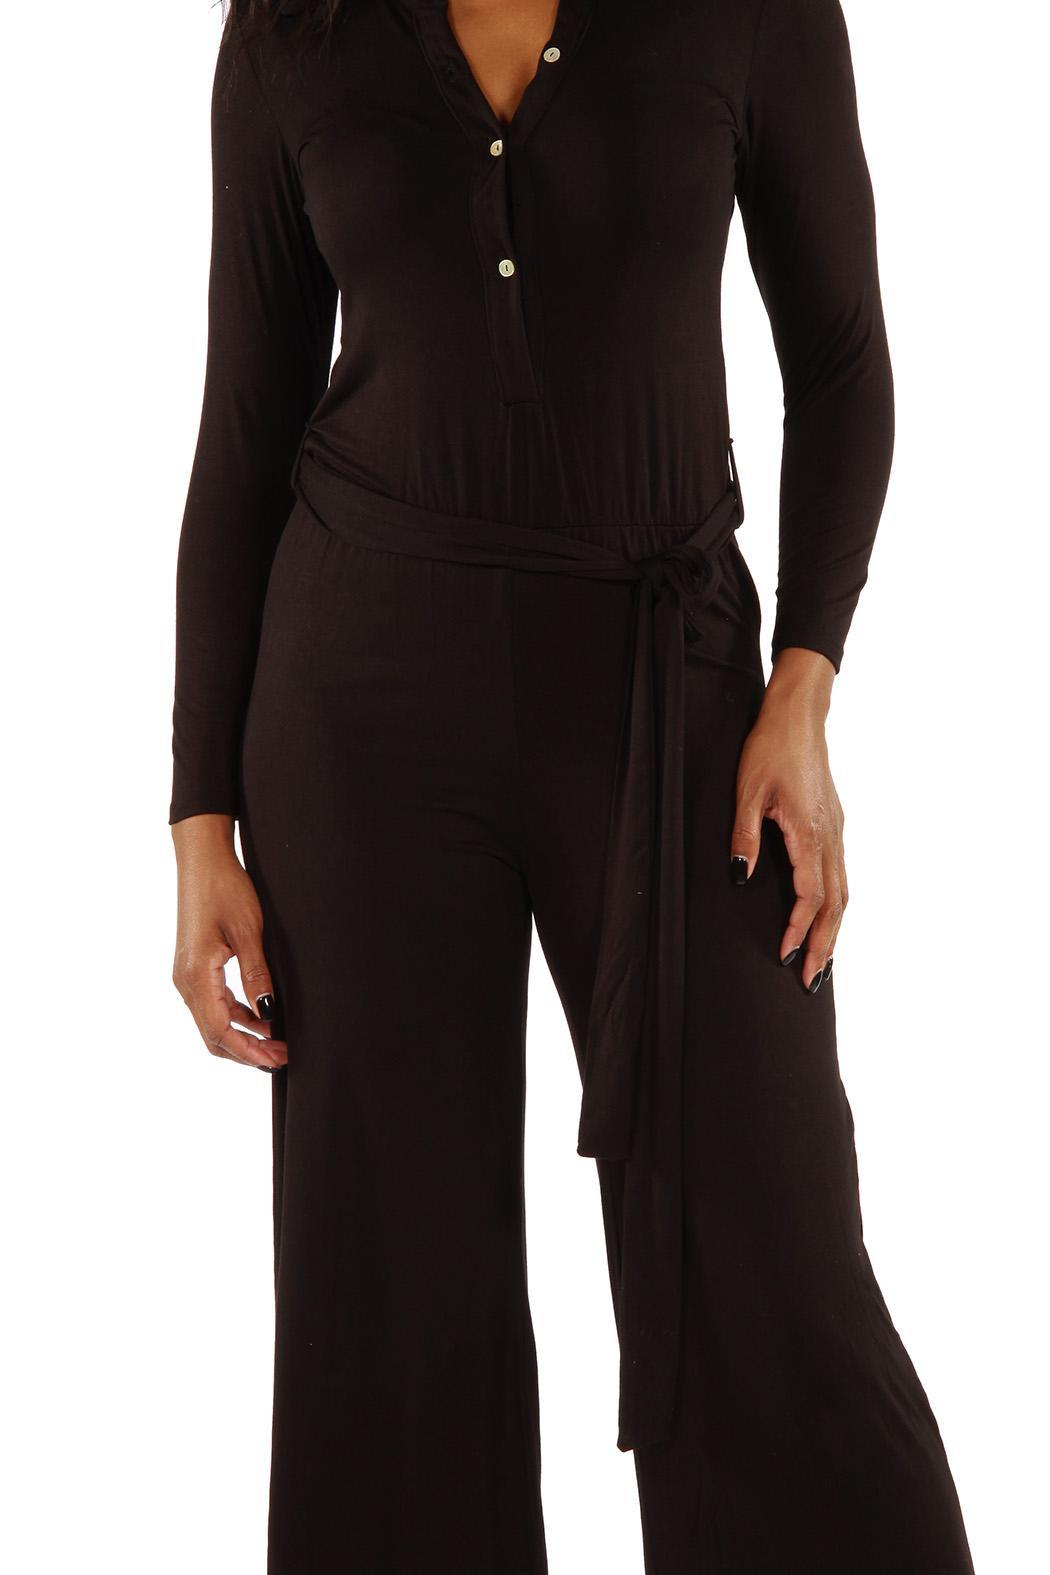 24/7 Comfort Apparel Silky Soft Jumpsuit from California ...